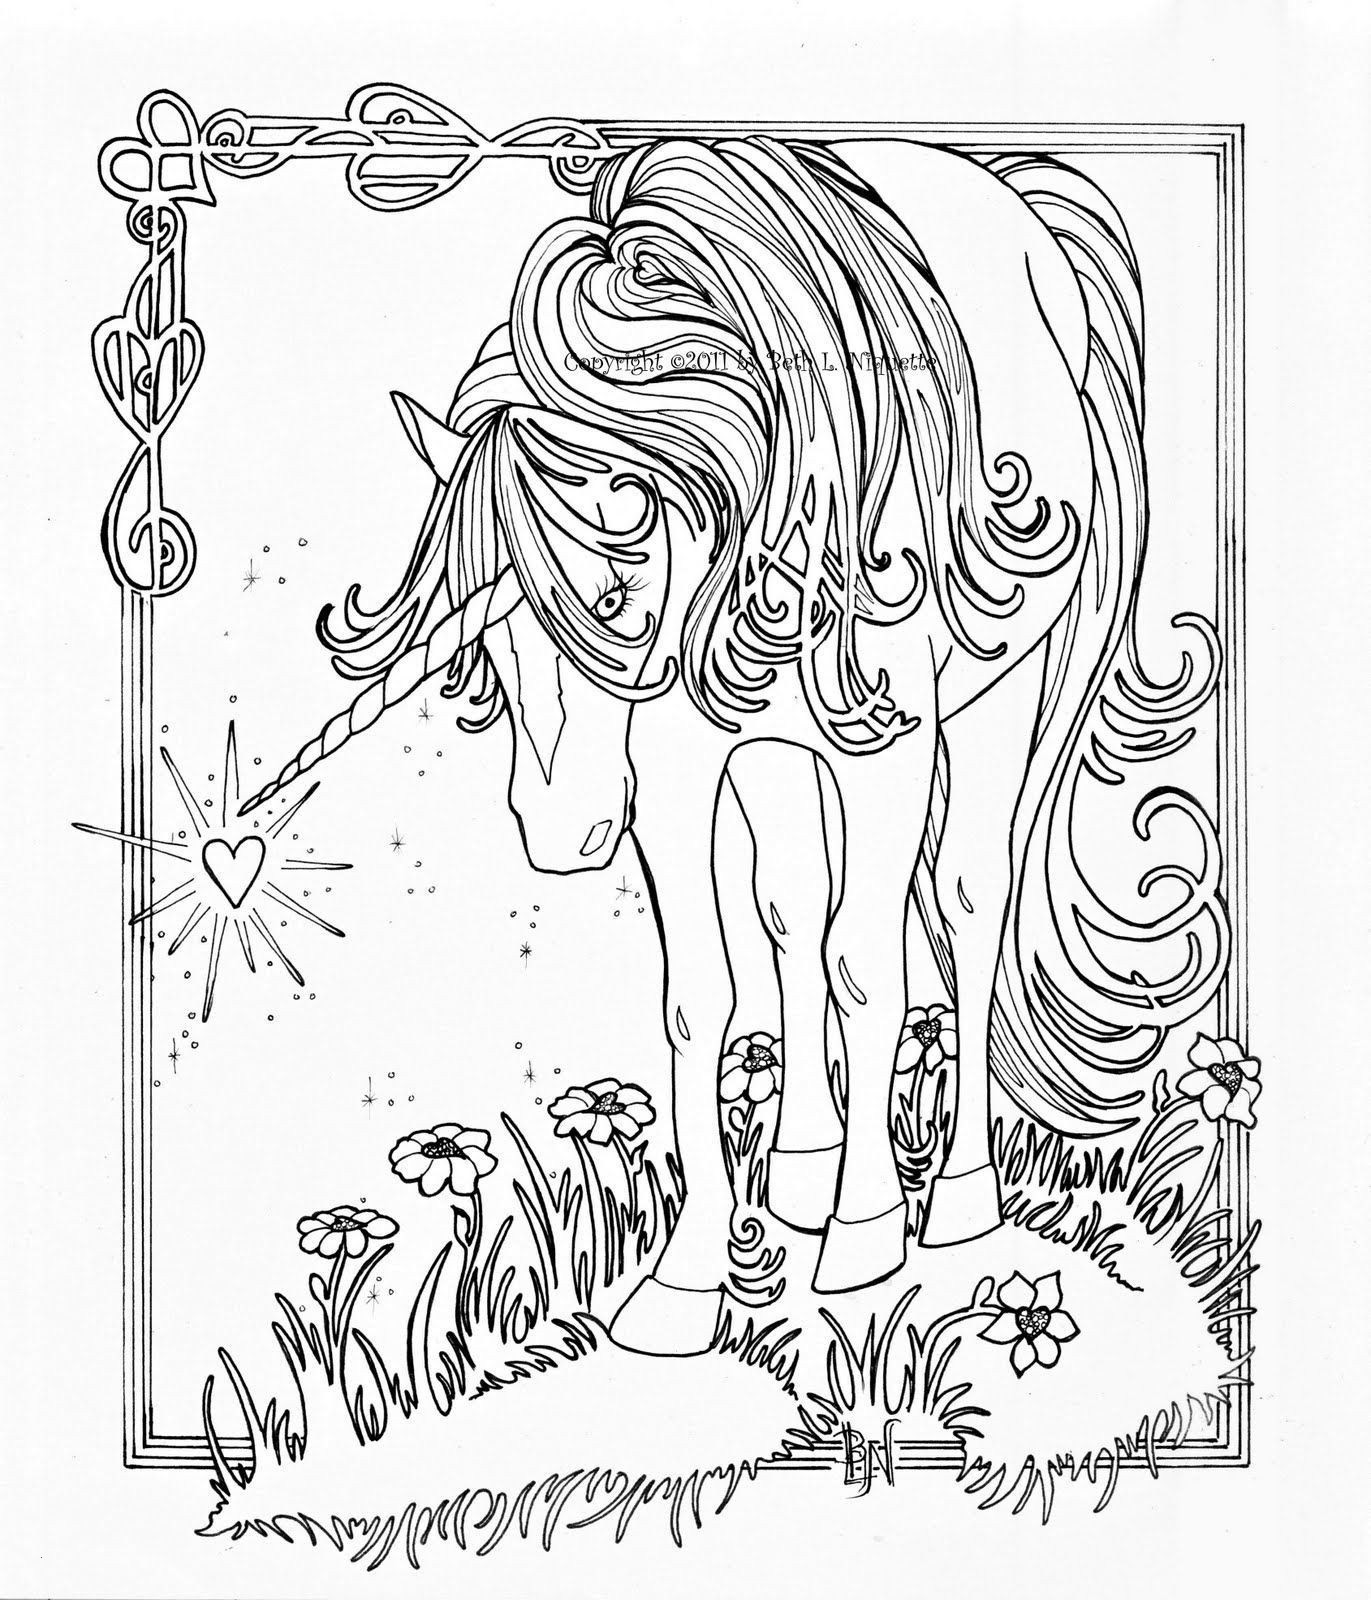 Mia and Me Coloring Pages Einzigartig Ausmalbilder Mia and Me Kostenlos Luxus Pin by Louise Brown Coloring Bilder